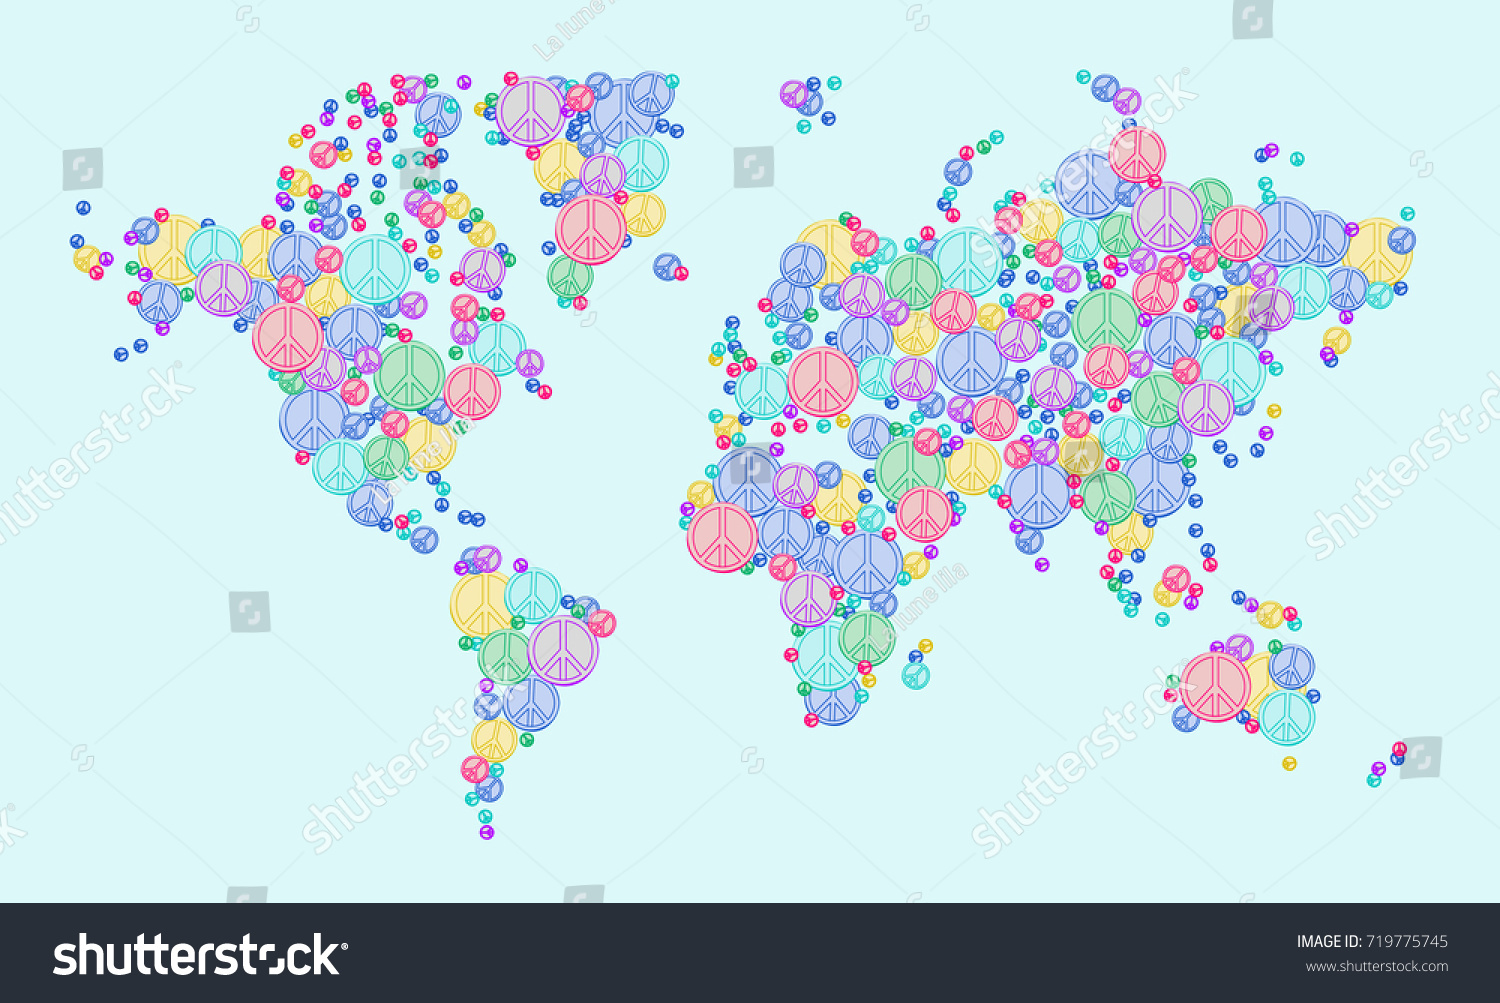 Illustration vector world map peace signs stock vector 719775745 illustration vector world map with peace signs world peace reconciliation and friendship concept design publicscrutiny Image collections